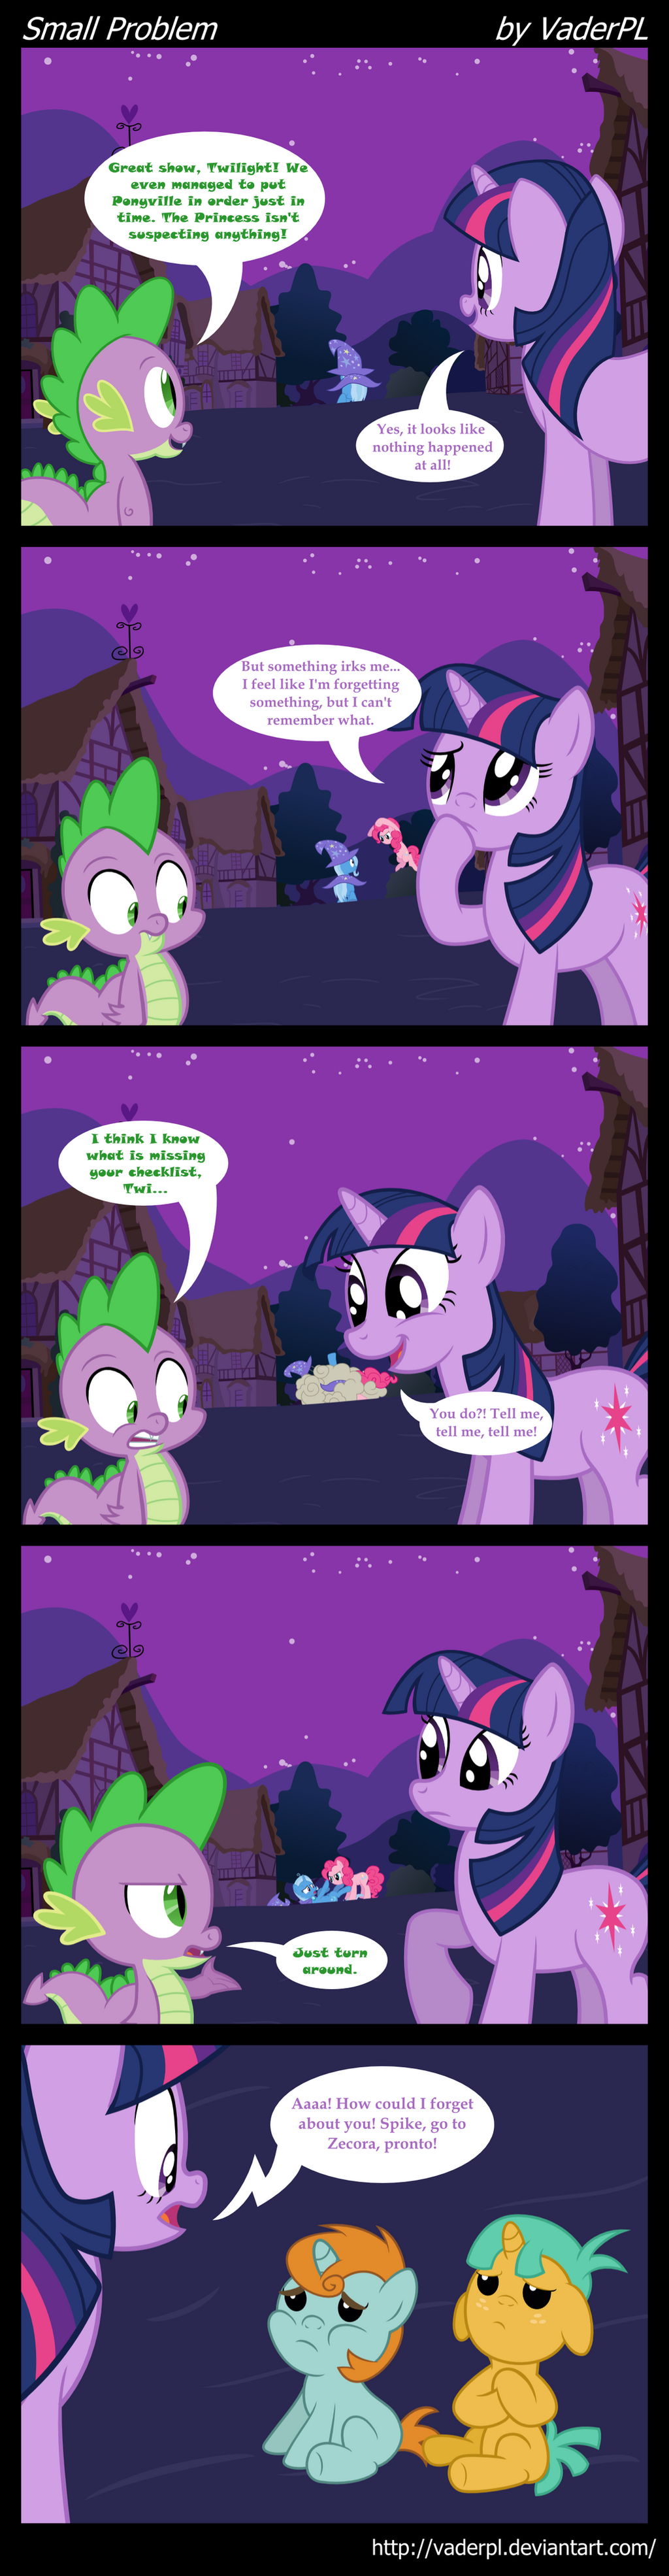 Small Problem - comic #1 by VaderPL